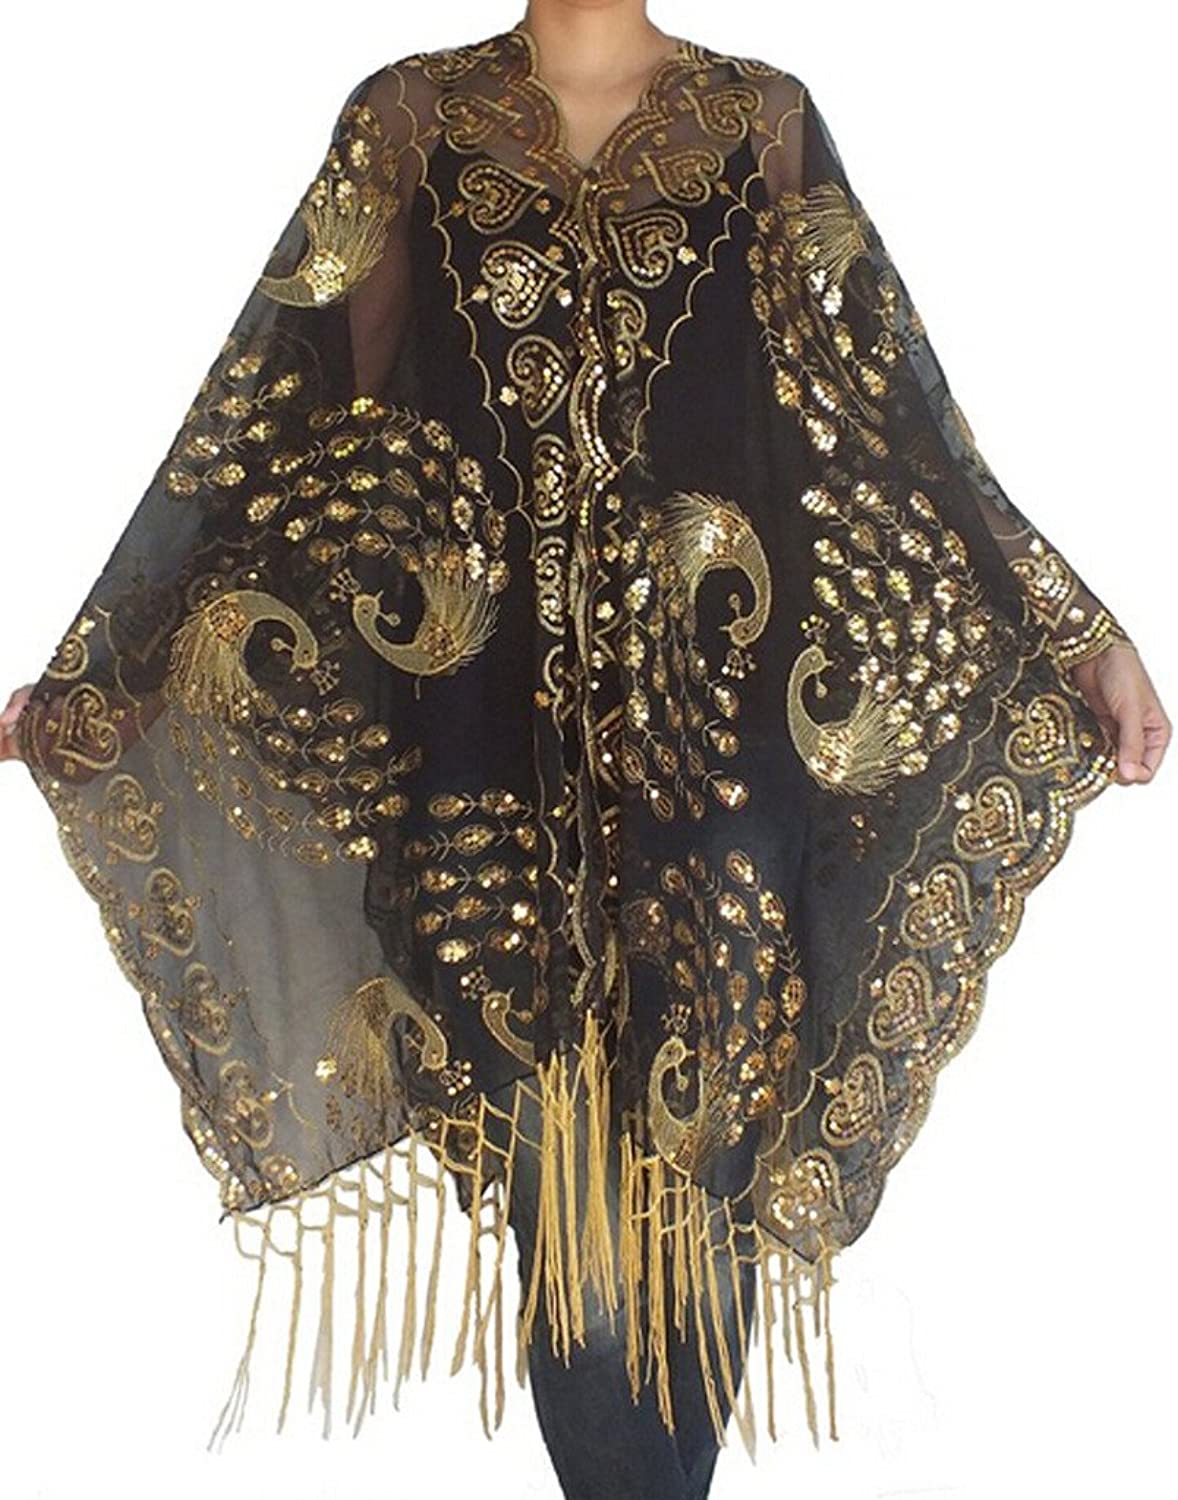 1920s Style Shawls, Wraps, Scarves  Peacock Phoenix Embroidery Sequins Wedding Scarf Shawls $19.99 AT vintagedancer.com